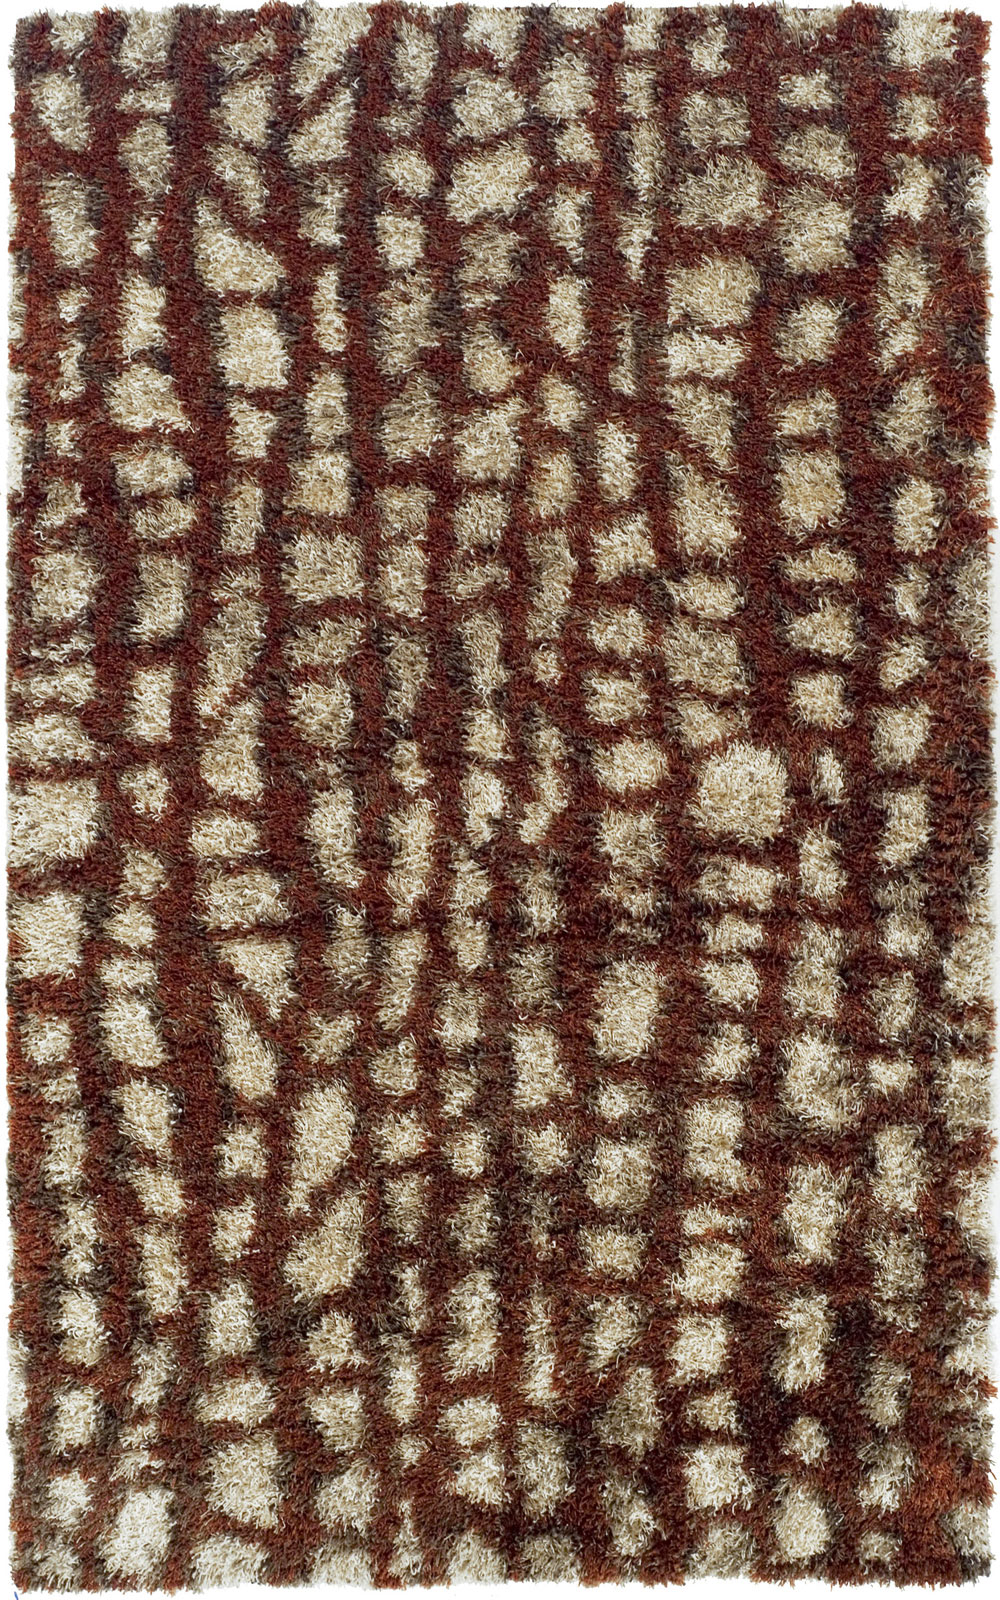 Dalyn Arturro AT1 Paprika Rug